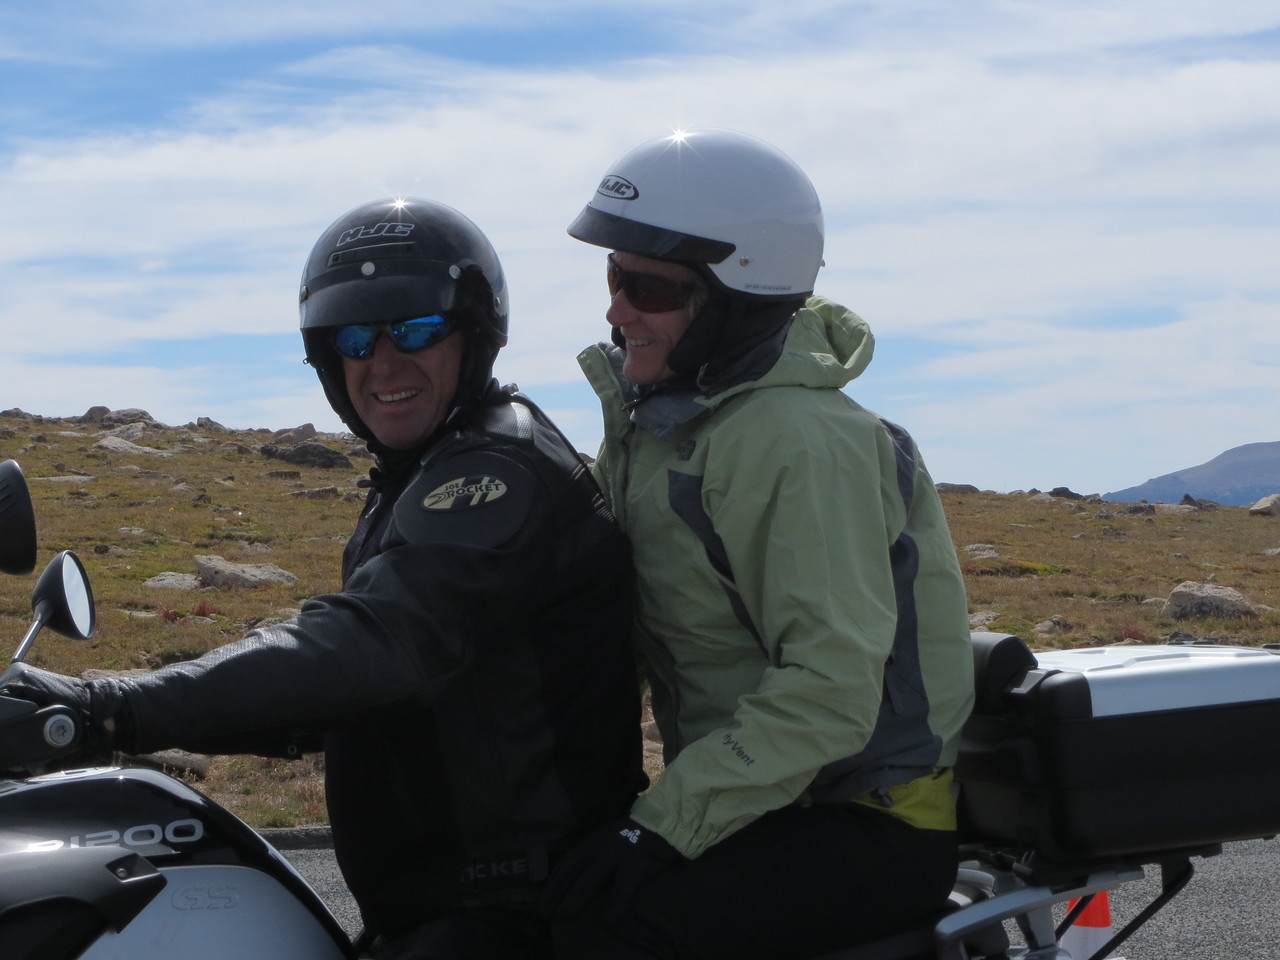 Day 3 (363 miles): Trail Ridge Rd, RMNP.  We met and chatted with these two on a GS; he is originally from France, she from South Dakota.  They live together now in Sturgis.  He was taking her to Albuquerque to a short term nursing consulting job.